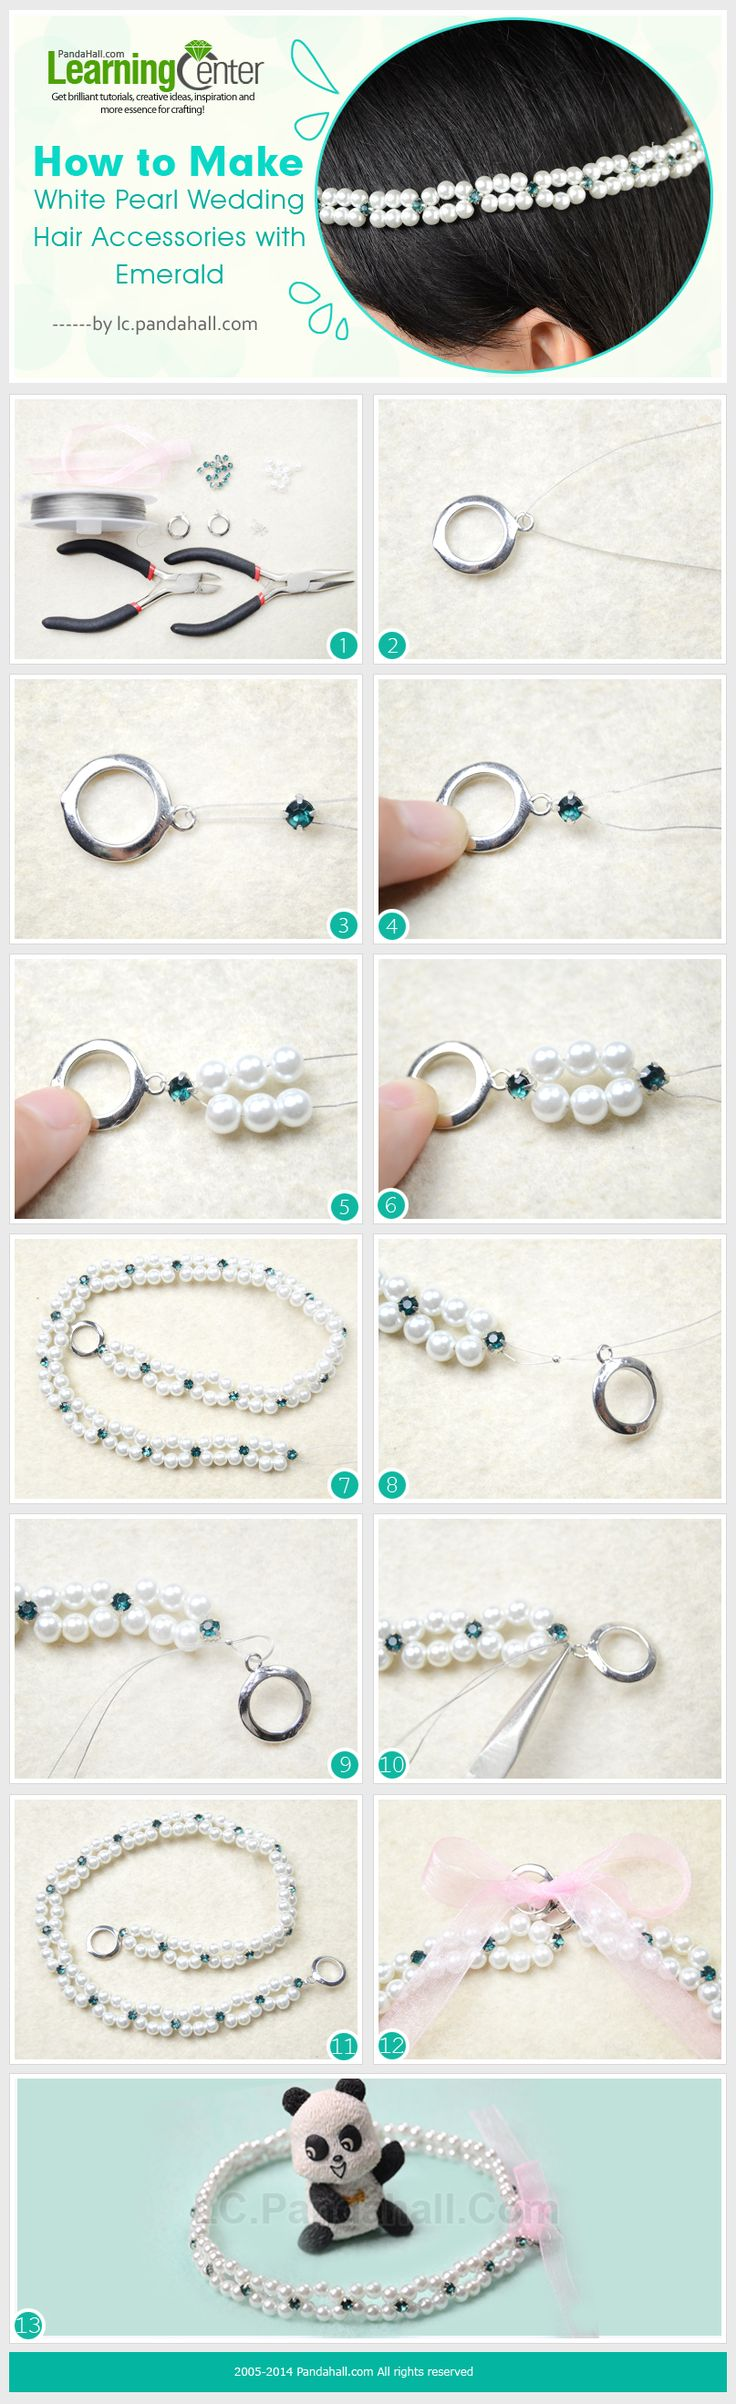 How to Make White Pearl Wedding Hair Accessories with Emerald